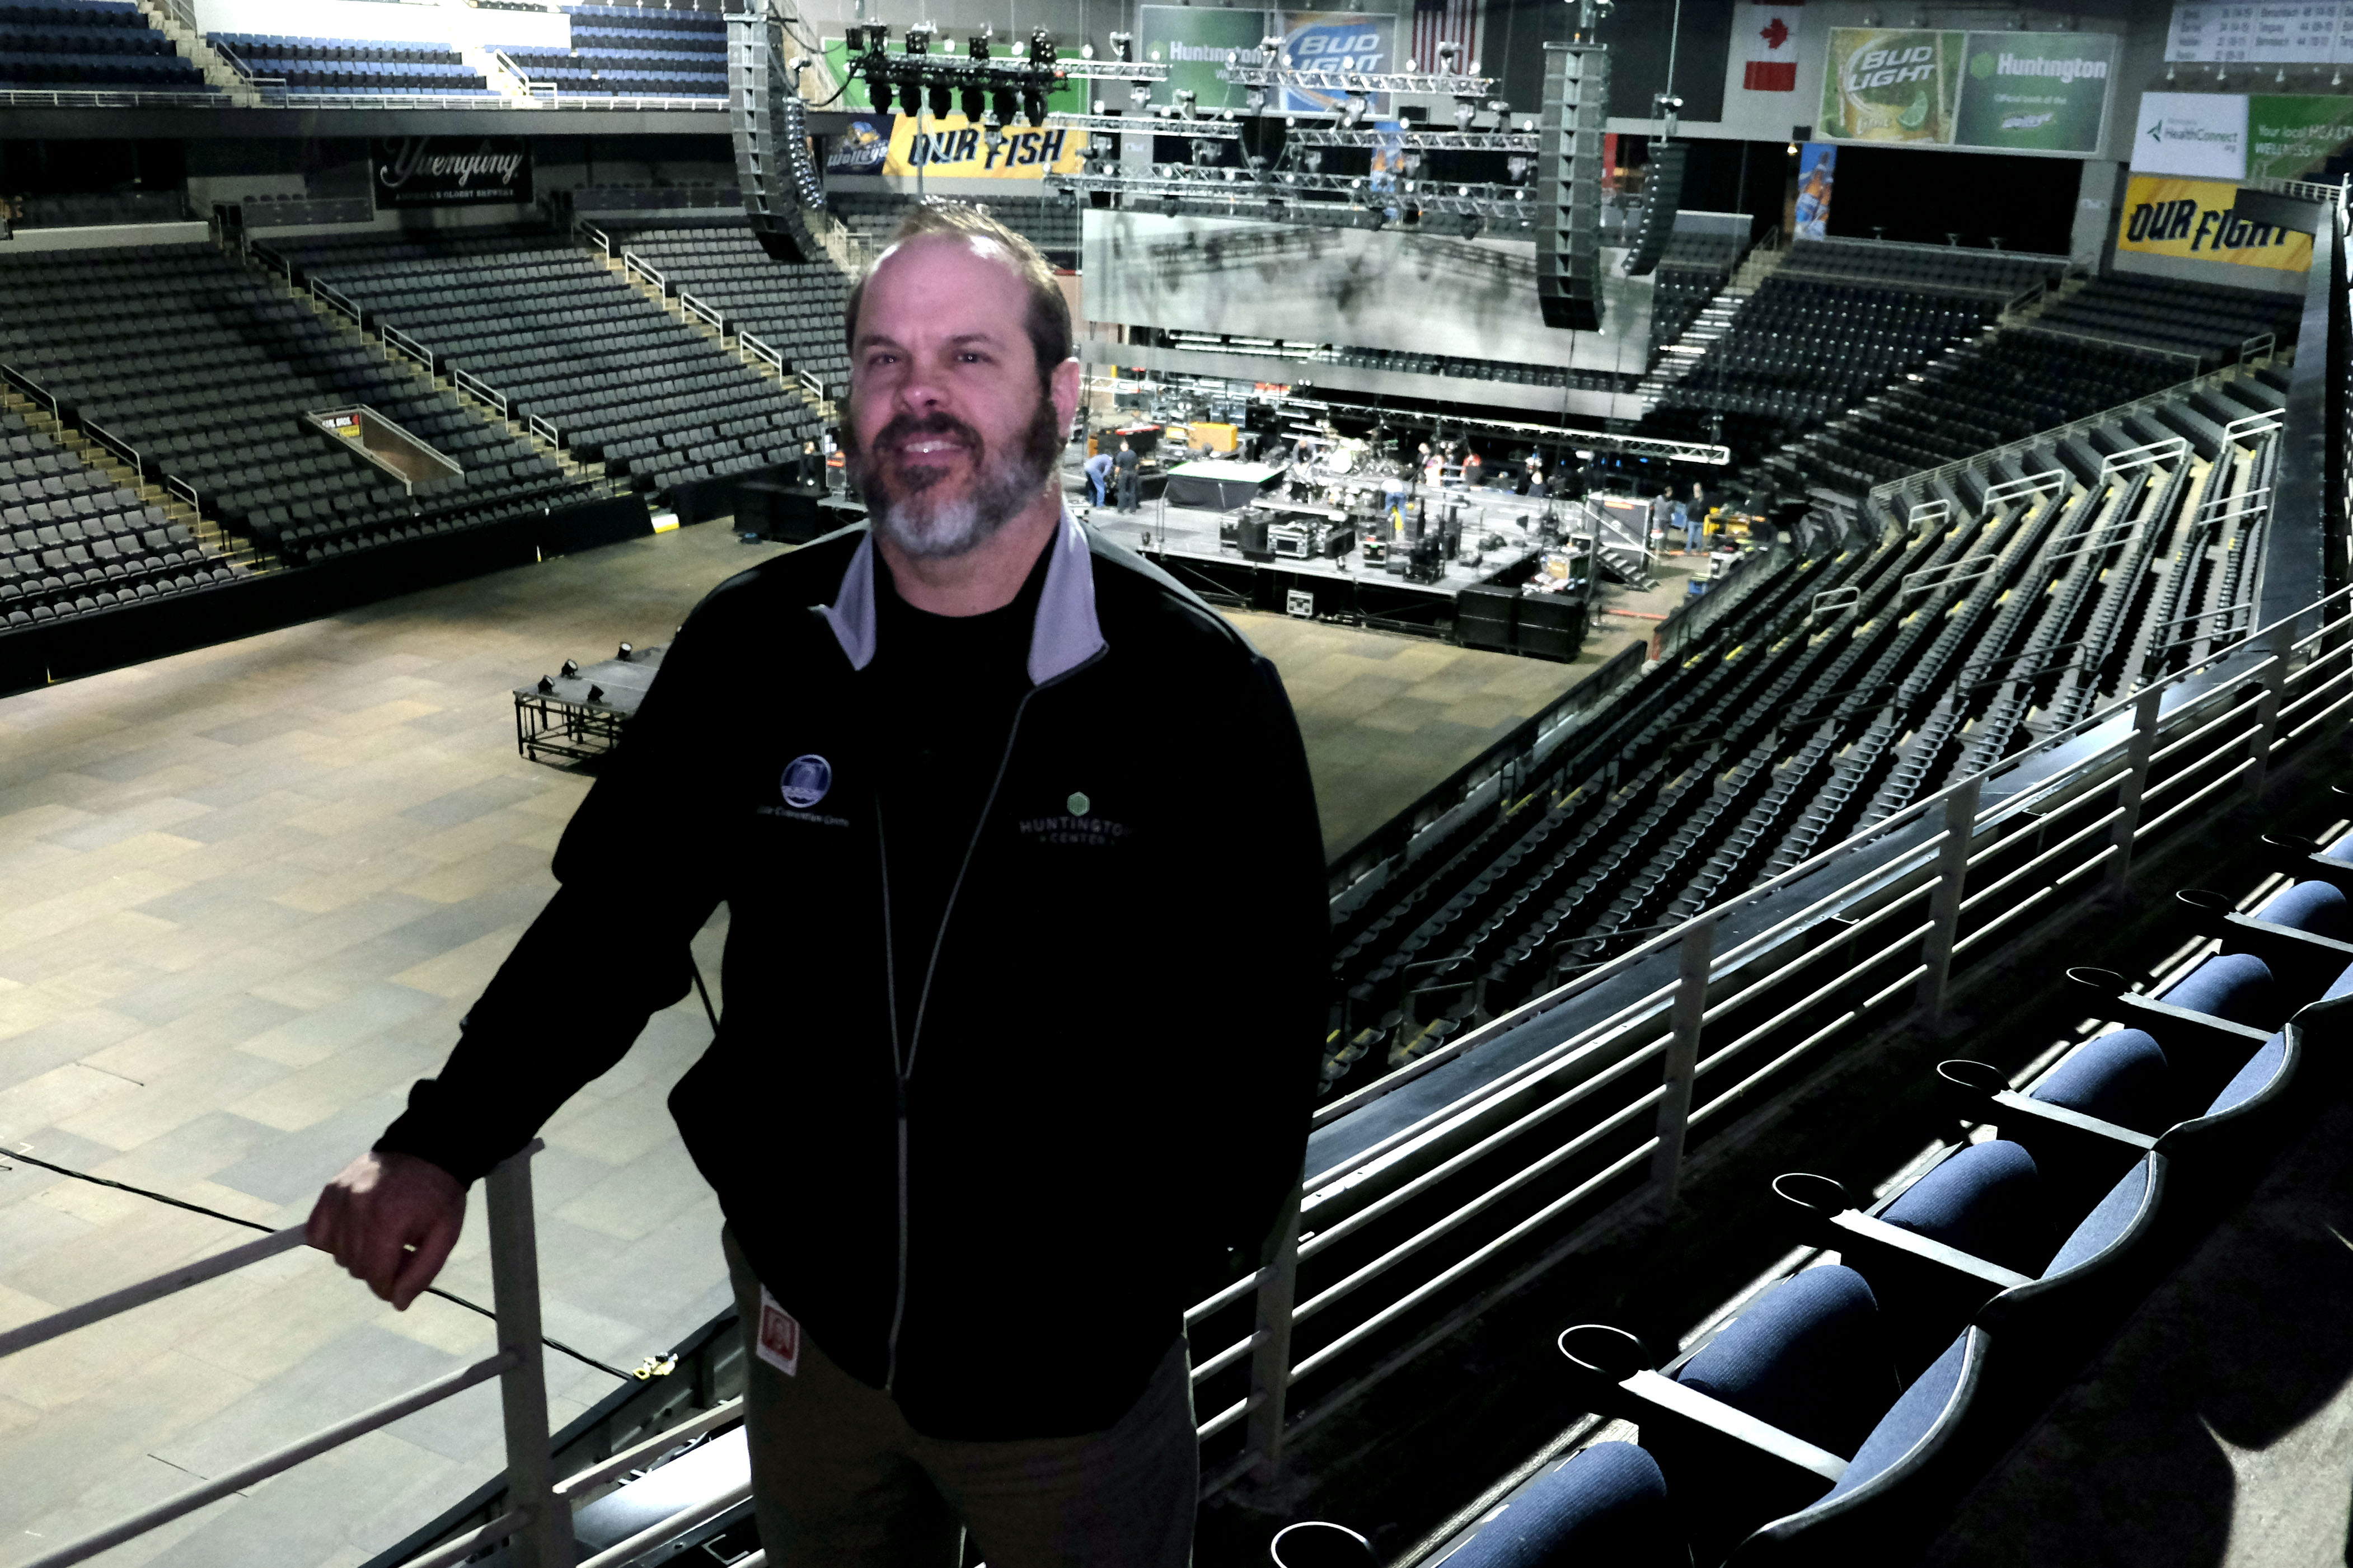 Area Concert Promoters Work Hard To Bring Big And Small